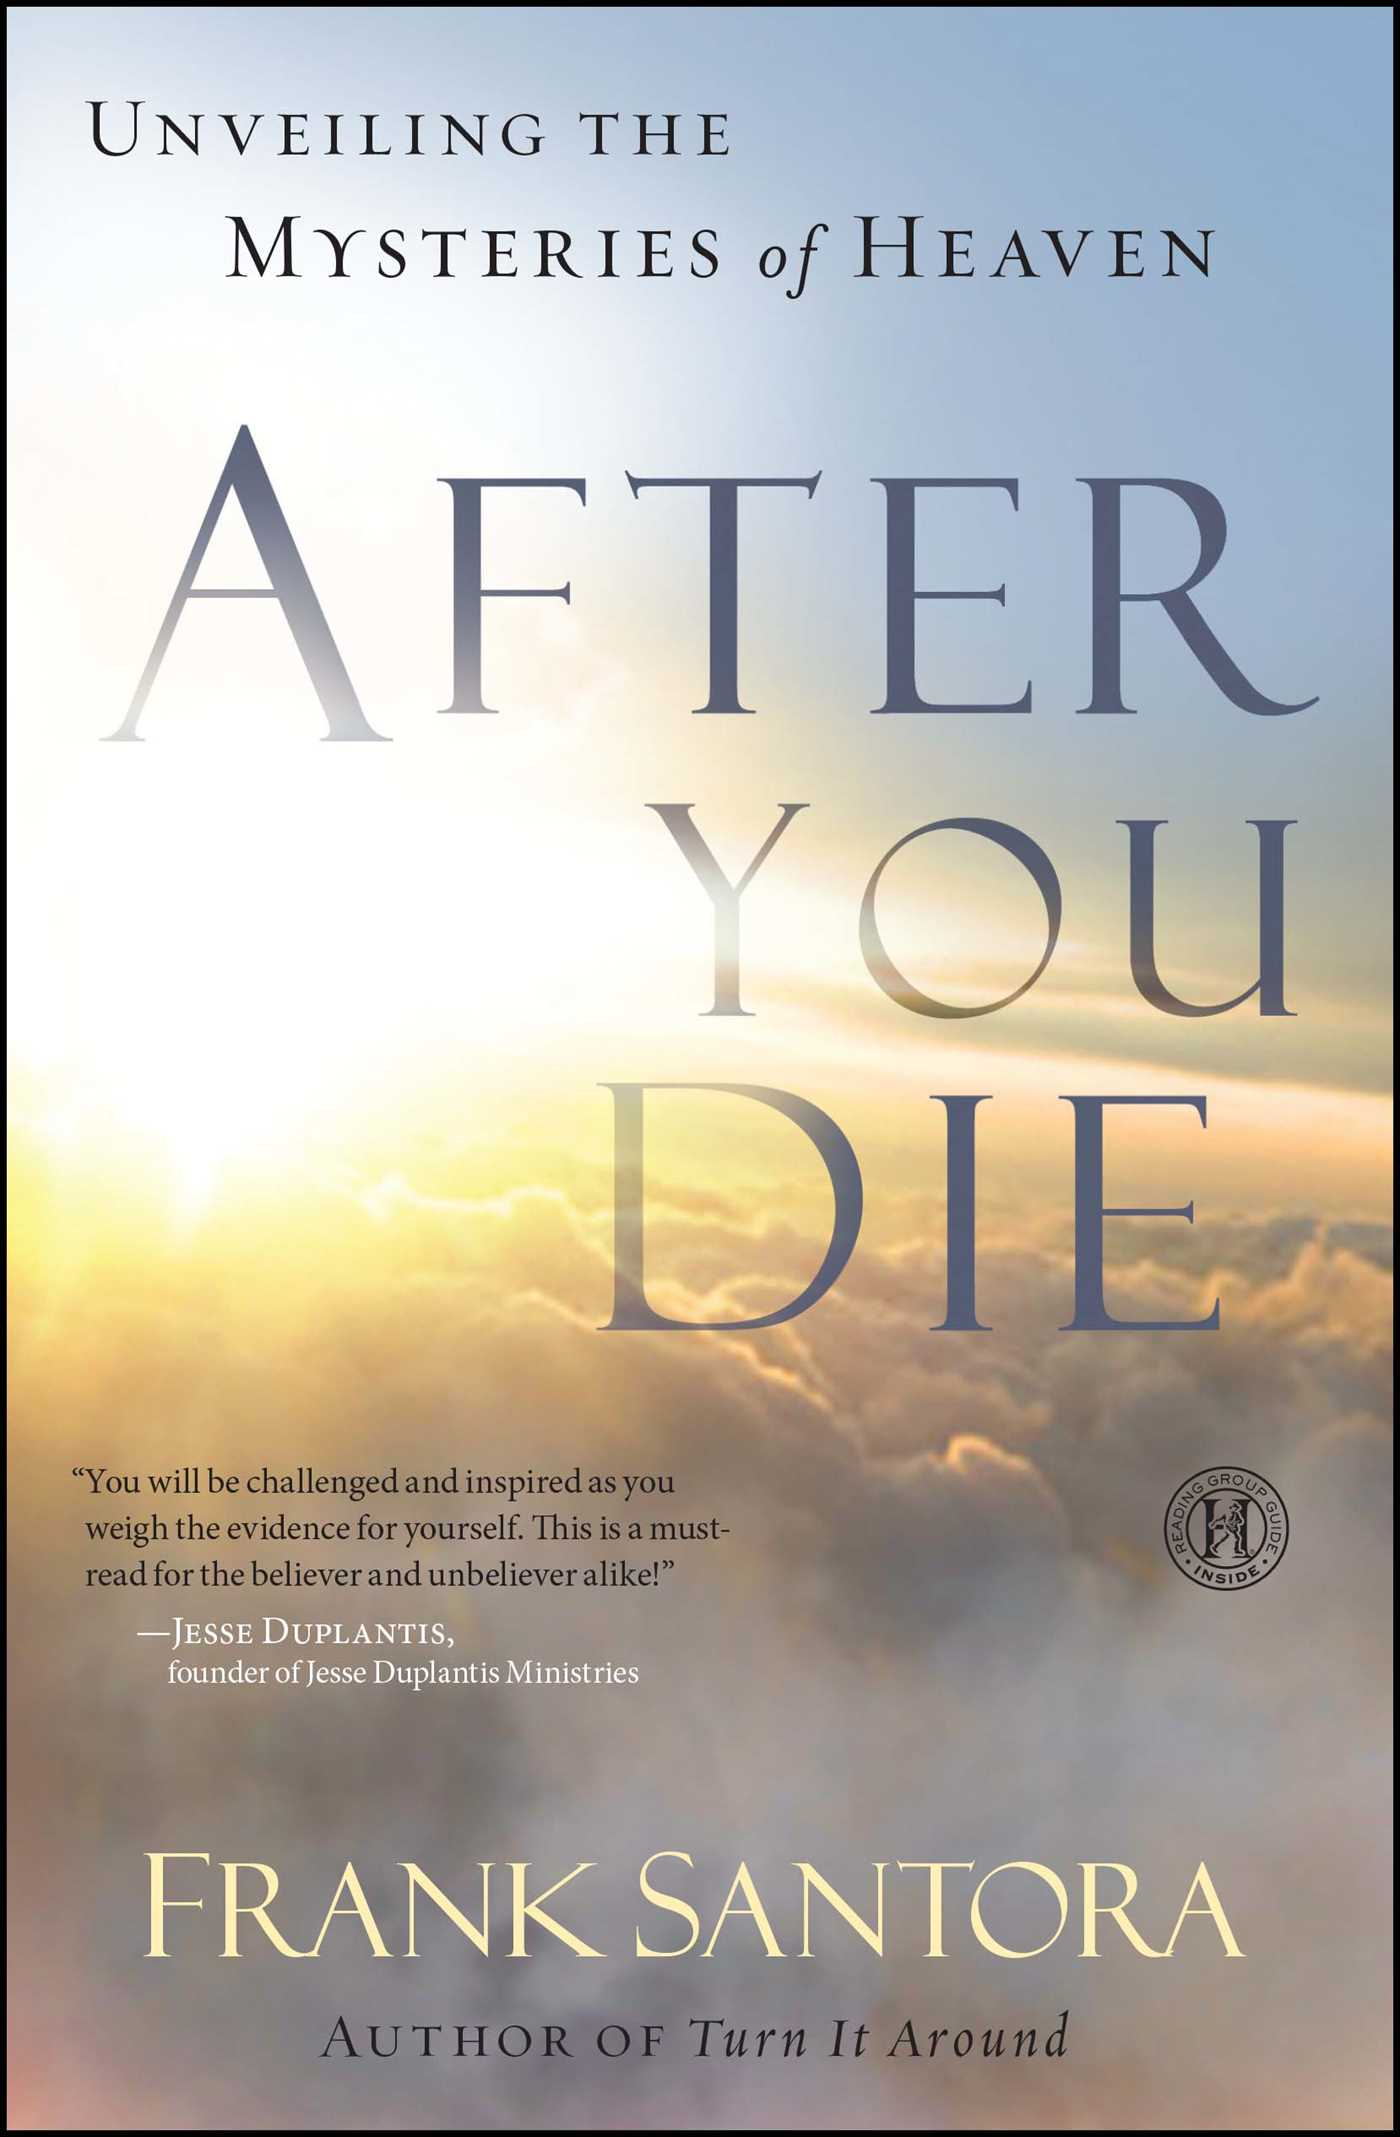 After You Die | Book by Frank Santora | Official Publisher